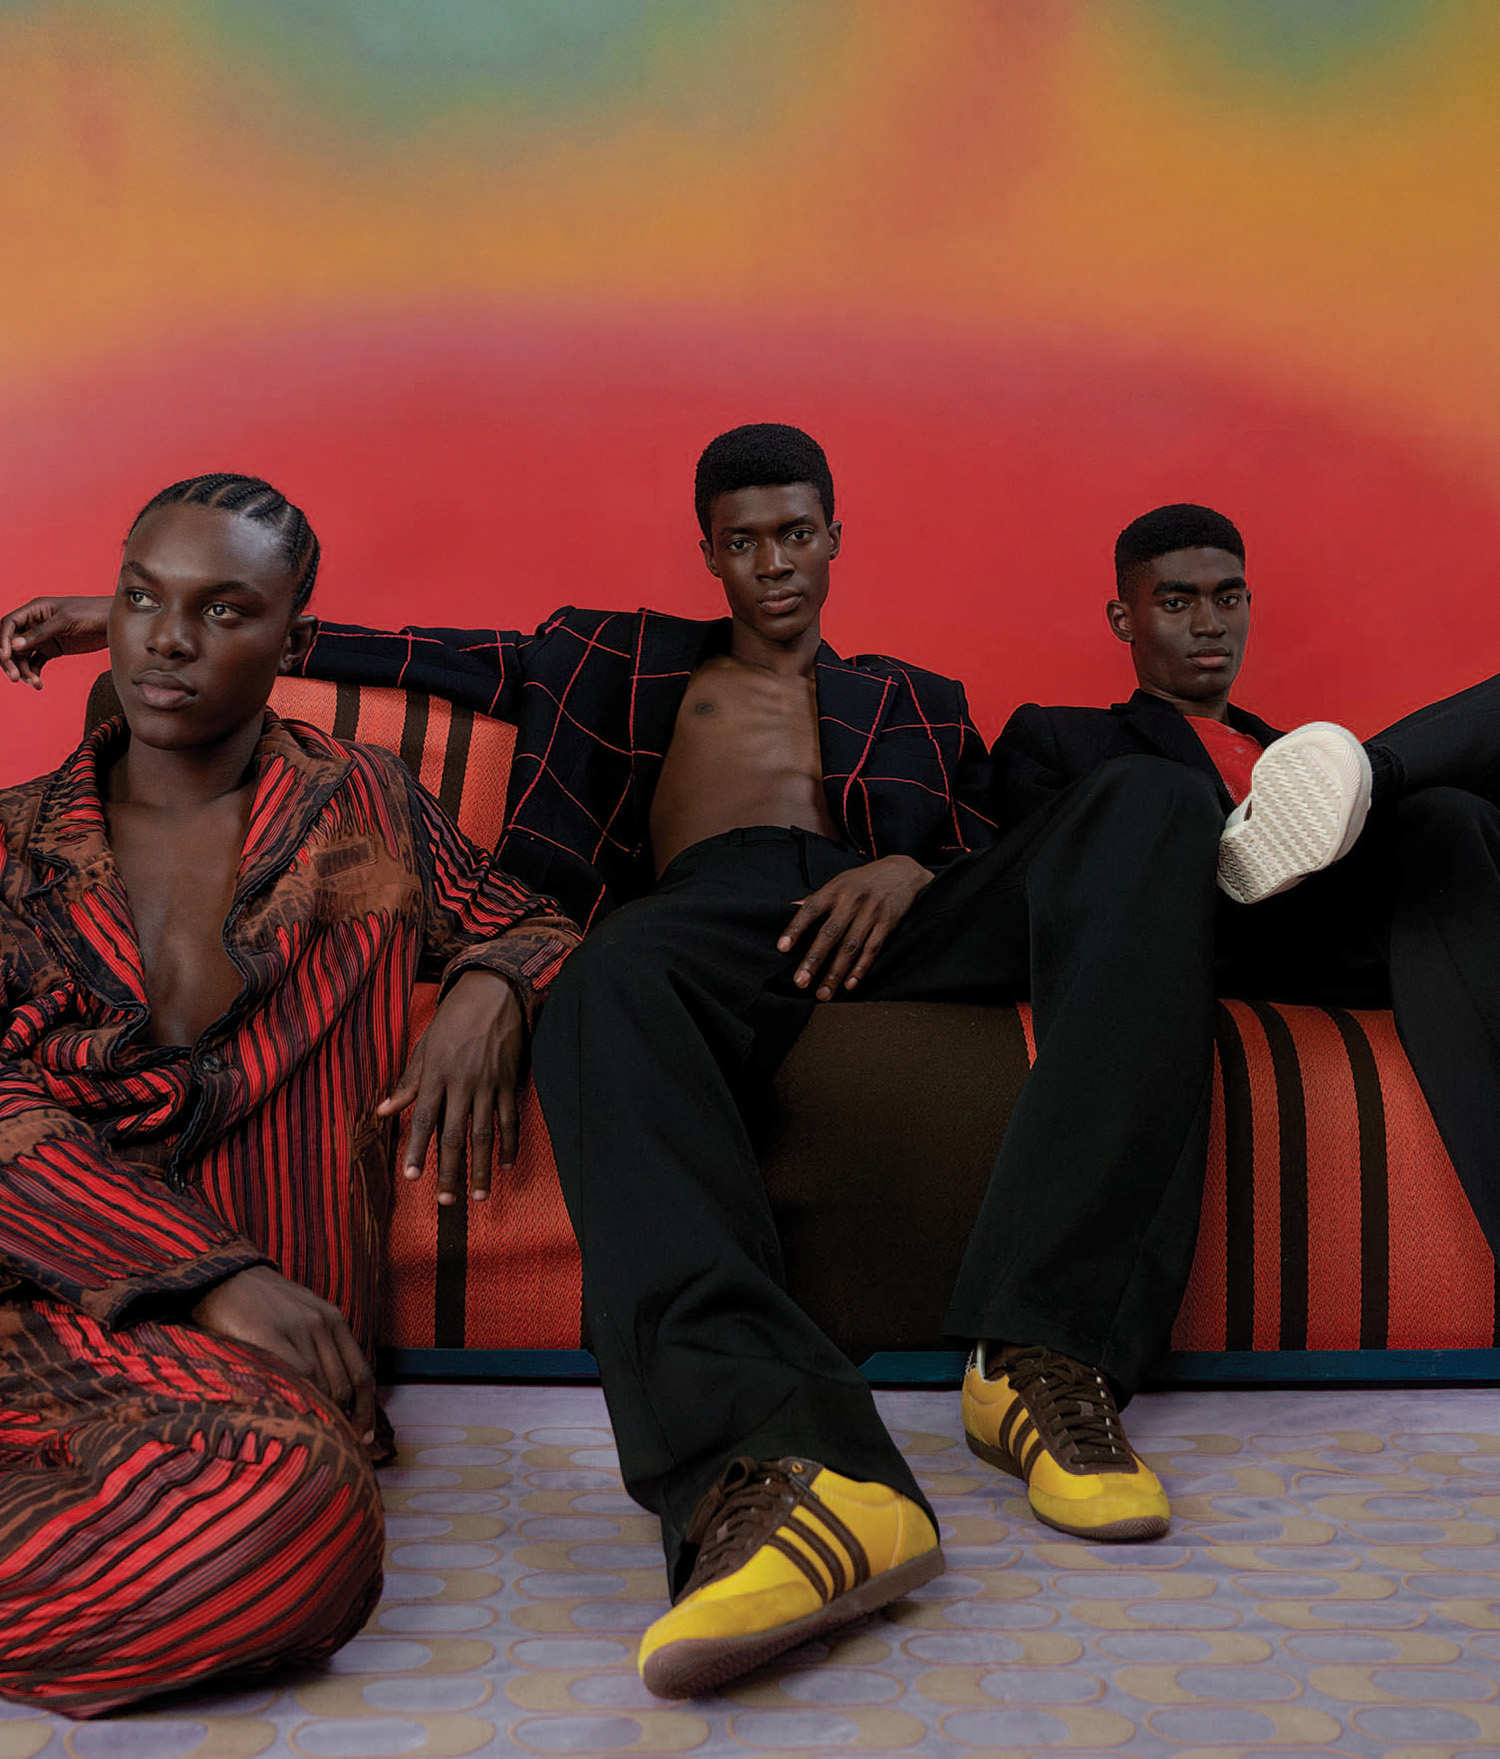 ''Over The Rainbow'' by Campbell Addy for WSJ. Magazine Fall 2021 Men's Style